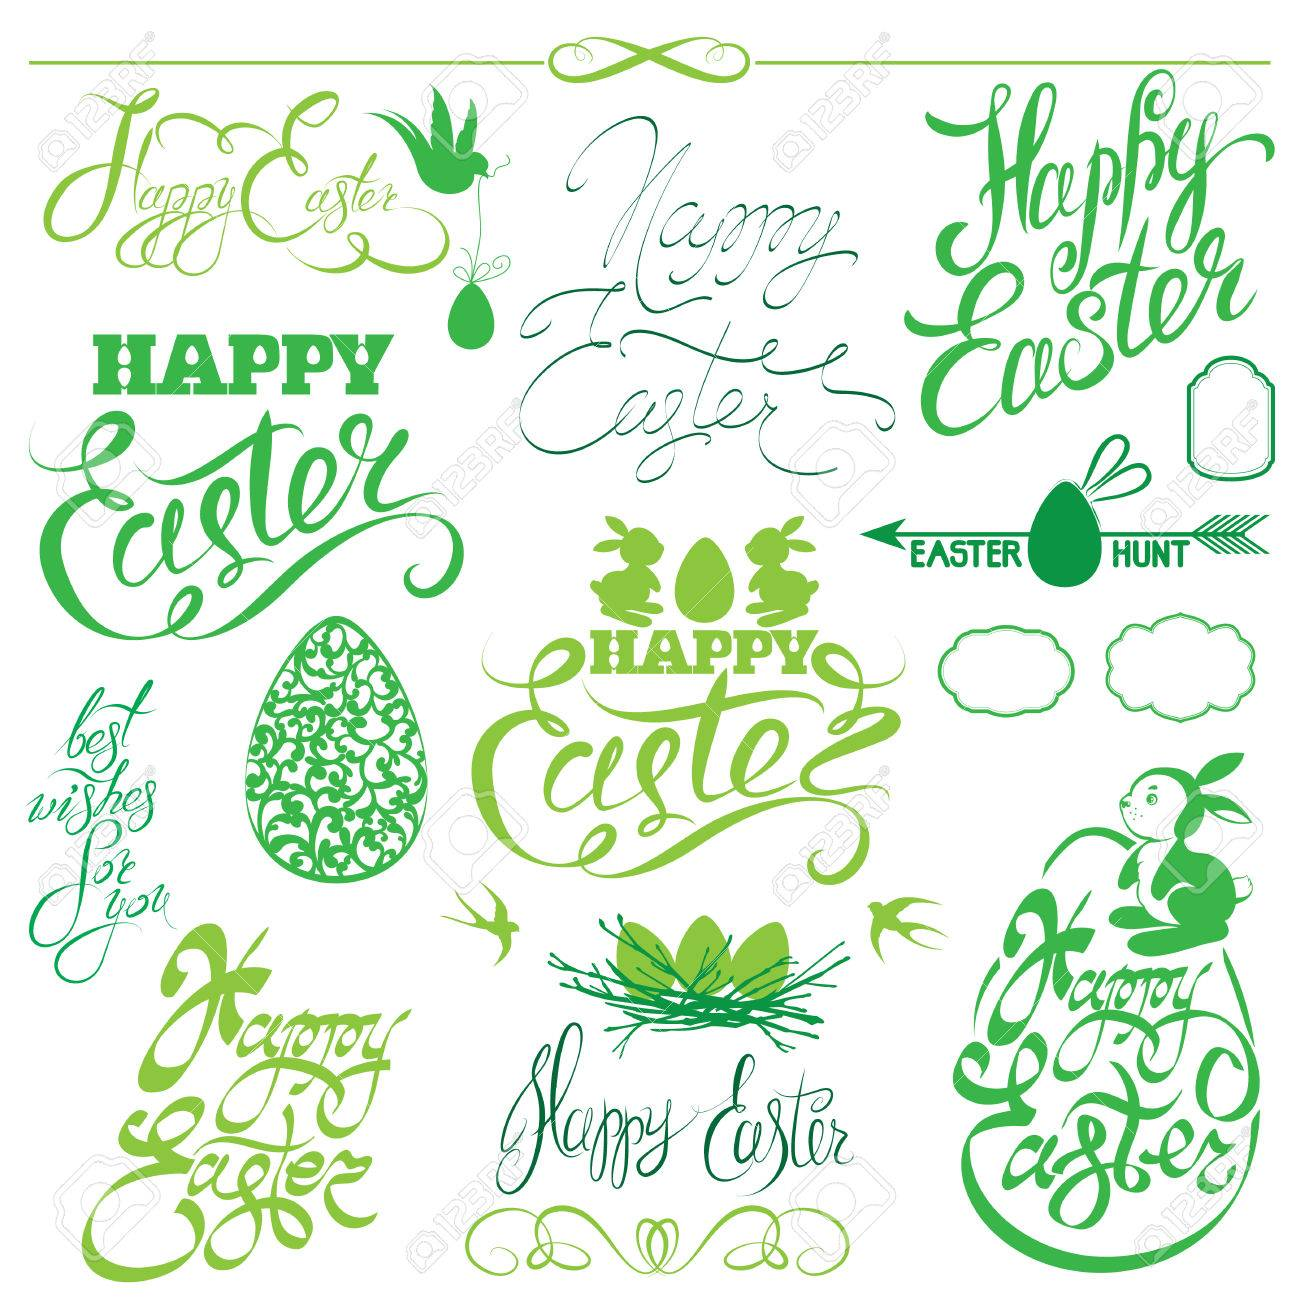 Set Of Happy Easter Holiday Calligraphy Hand Lettering Greetings